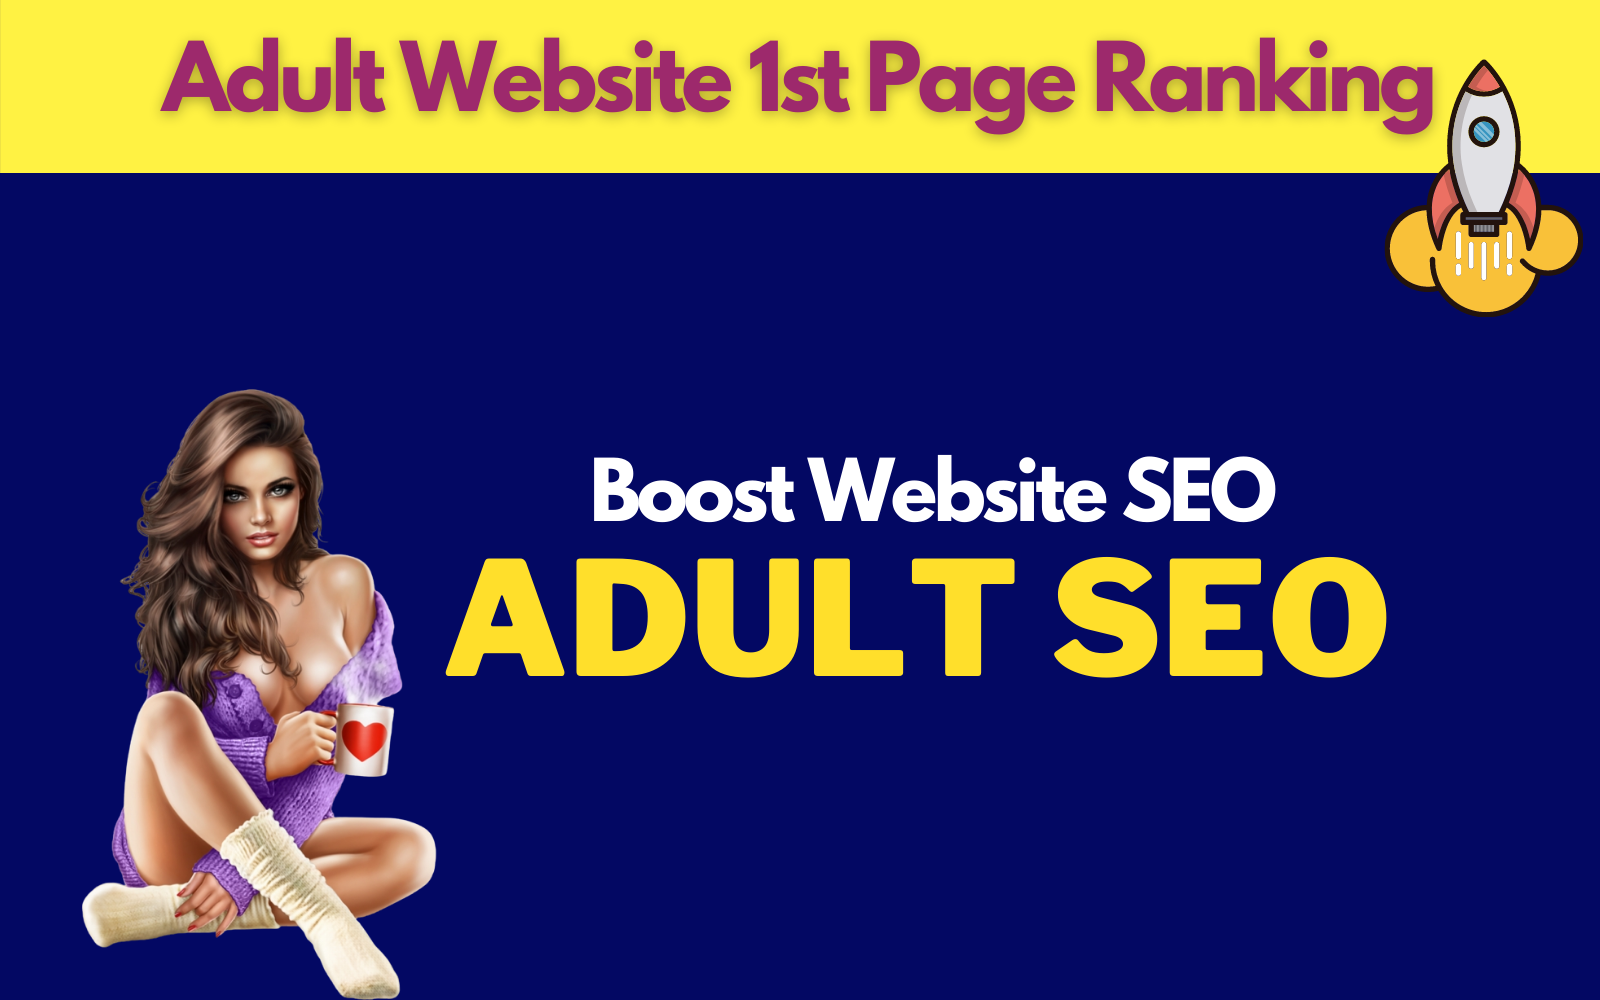 1000 Dofollow Backlinks for Adult website to 1st page ranking